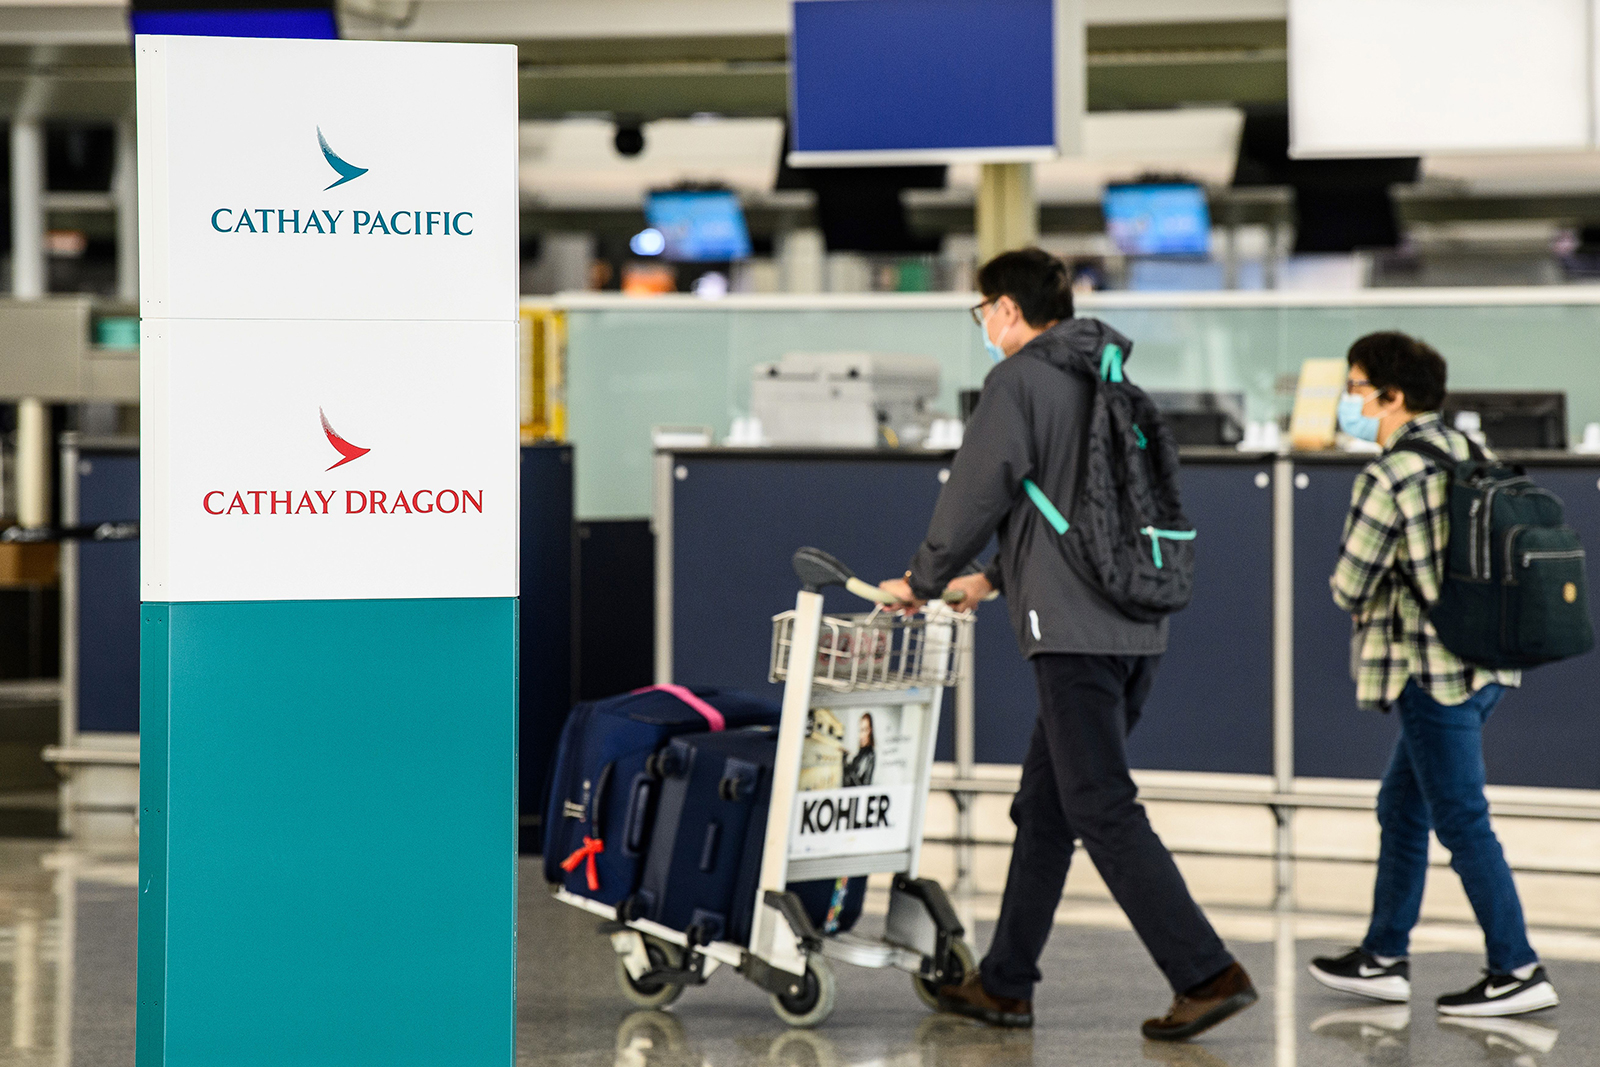 Cathay Pacific to cut thousands of jobs and eliminate Cathay Dragon airline as Covid-19 weighs on travel